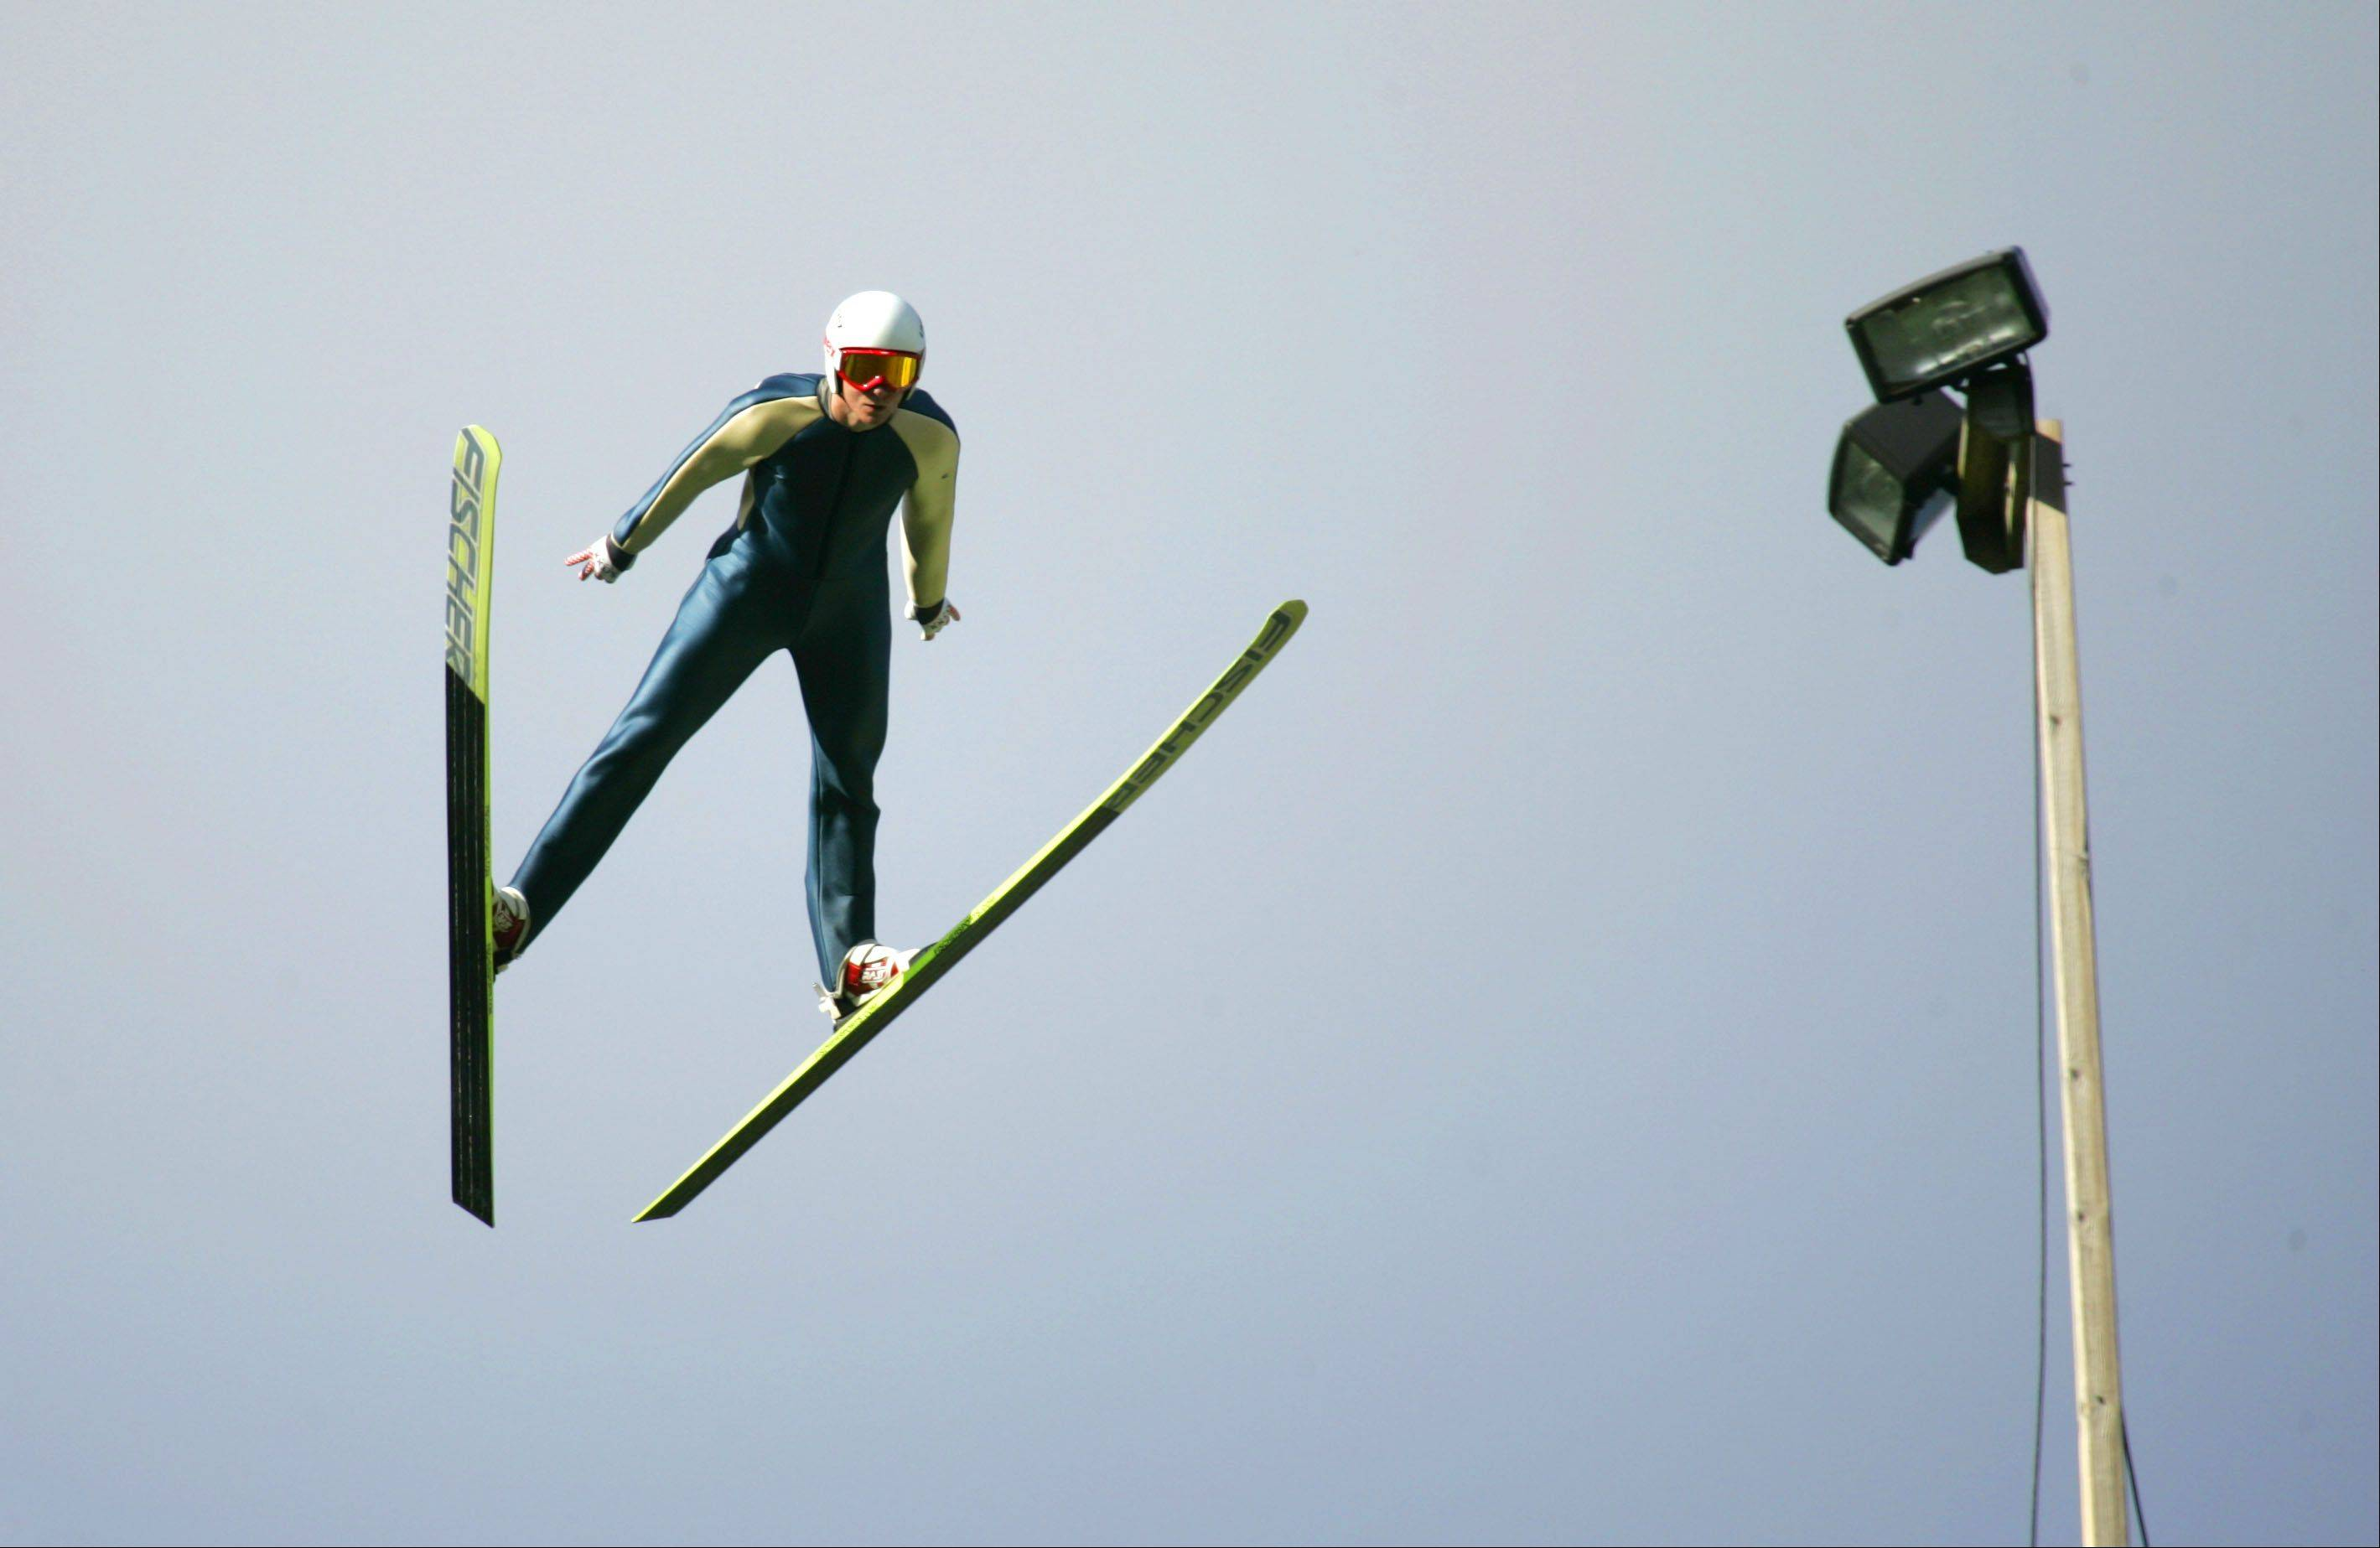 Peter Frenette, 19, a 2010 Olympian from Lake Placid, N.Y., launches from the ramp Friday during training day for the U.S. National Ski Jumping and Nordic Combined Championships at Norge Ski Club in Fox River Grove.